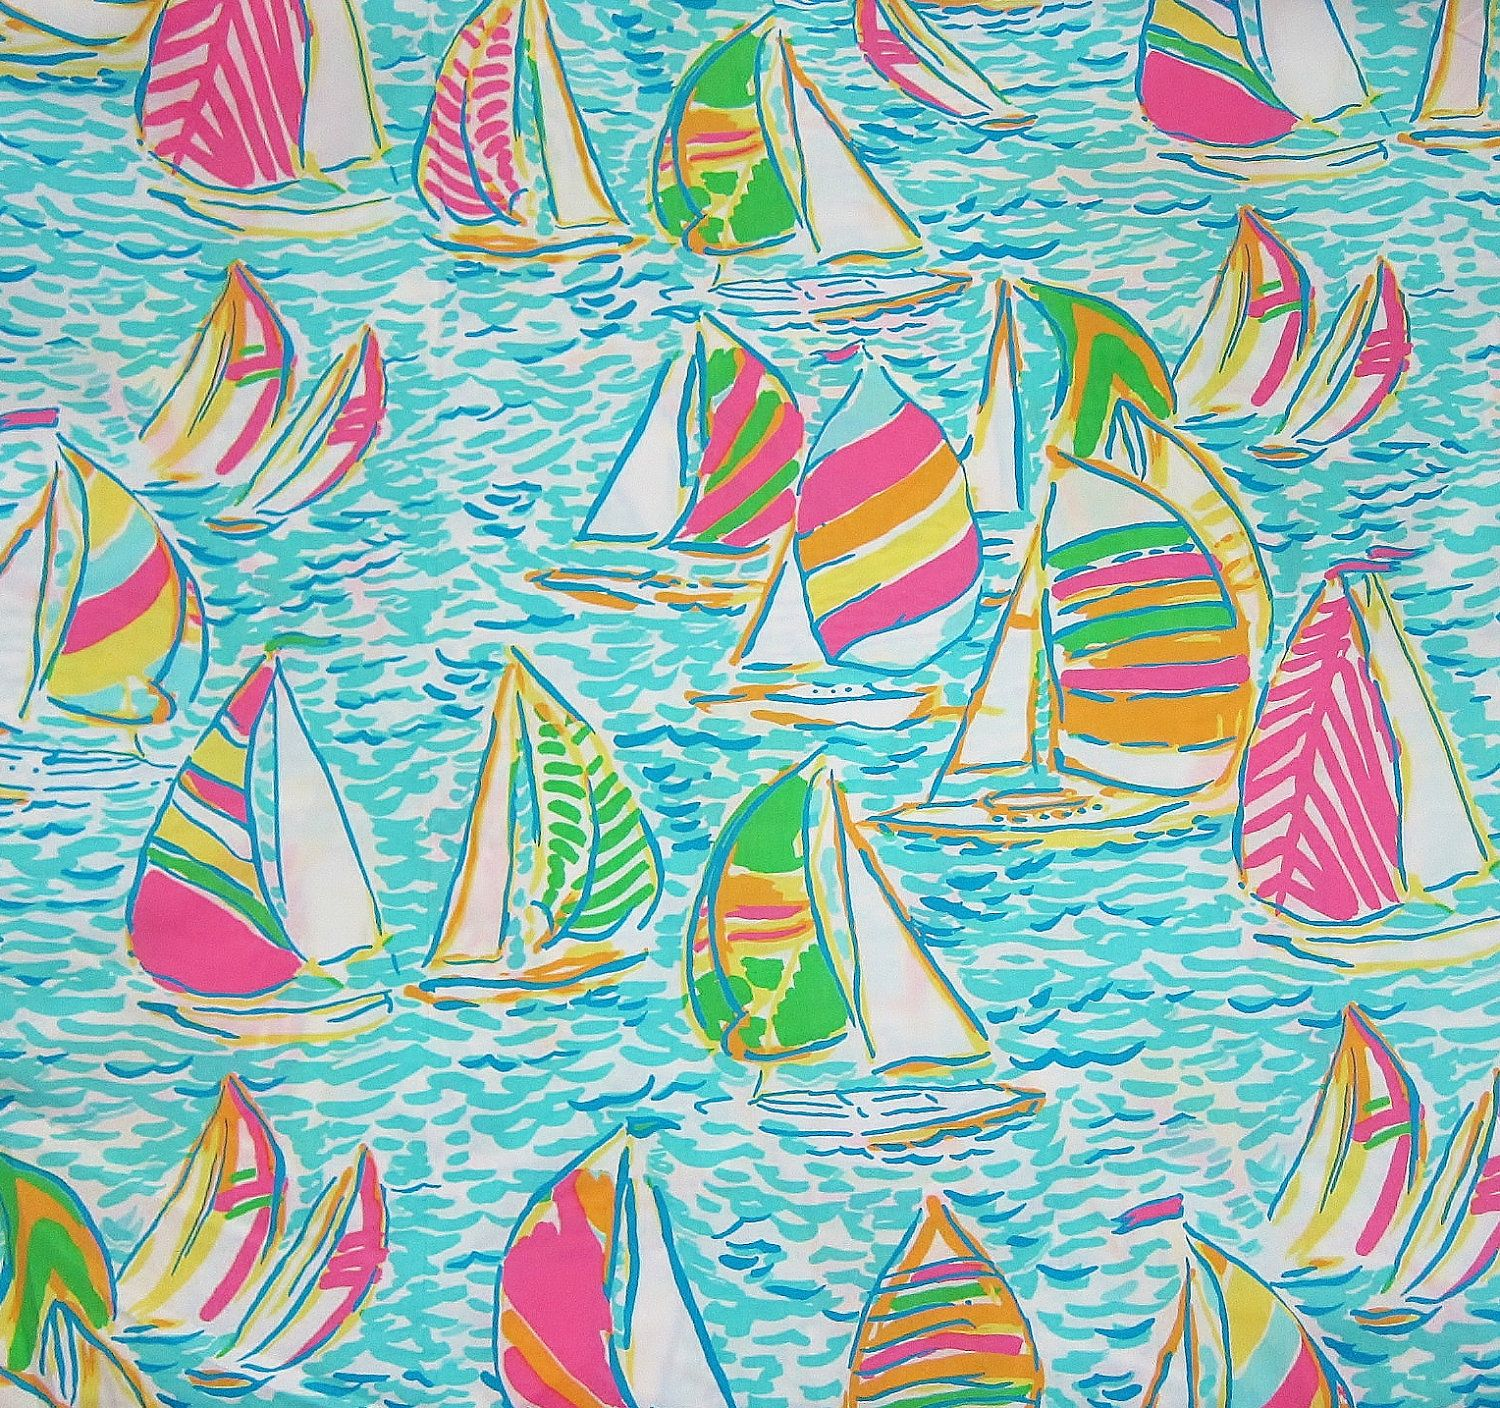 Lilly Pulitzer Fabric Authentic New Lilly Pulitzer Fabric 2012 Fall Multi You Gotta